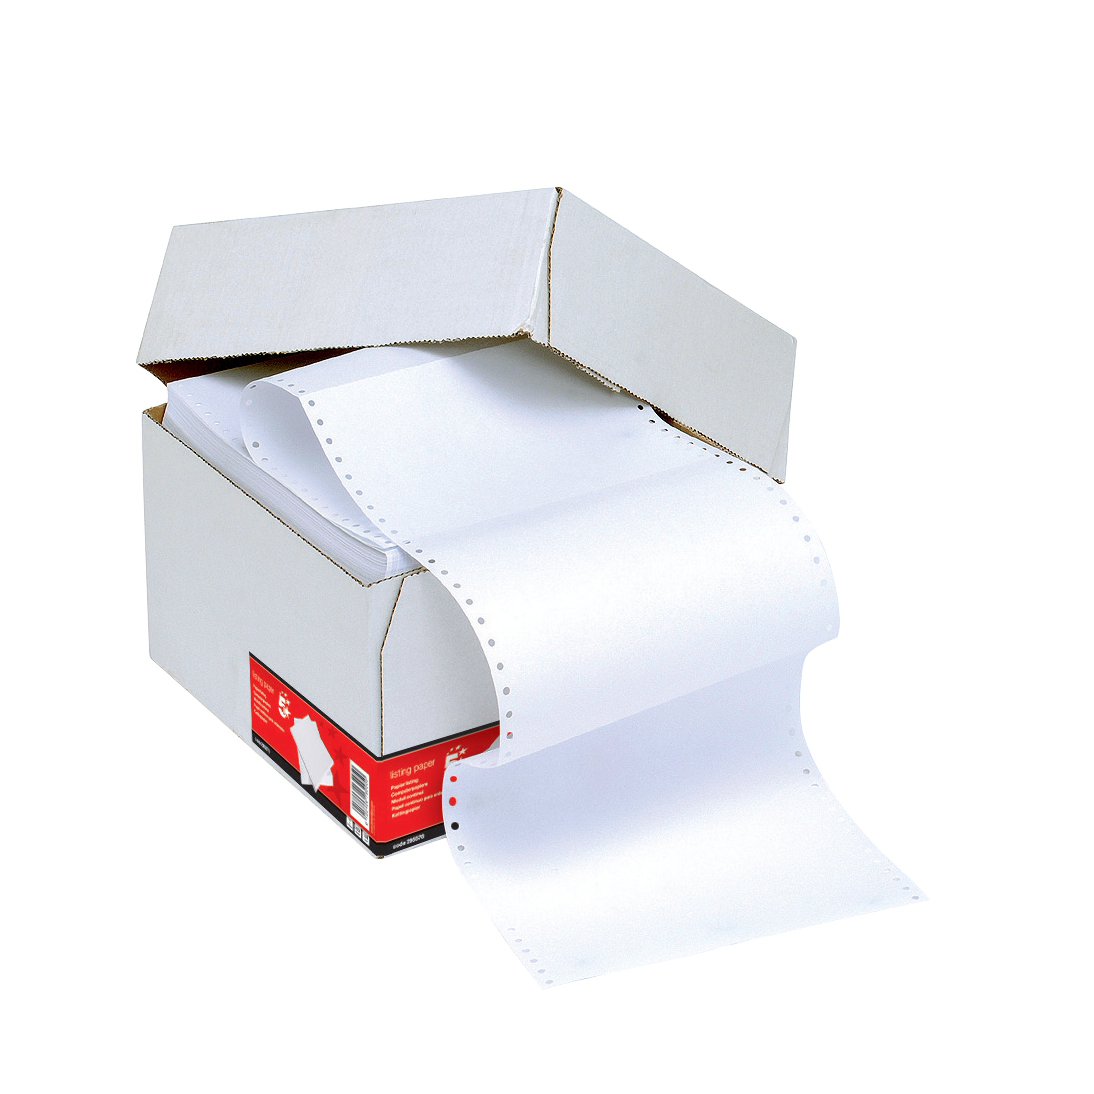 Listing Paper 5 Star Office Listing Paper 1-Part Micro-perforated 70gsm 12inchx235mm Plain 2000 Sheets